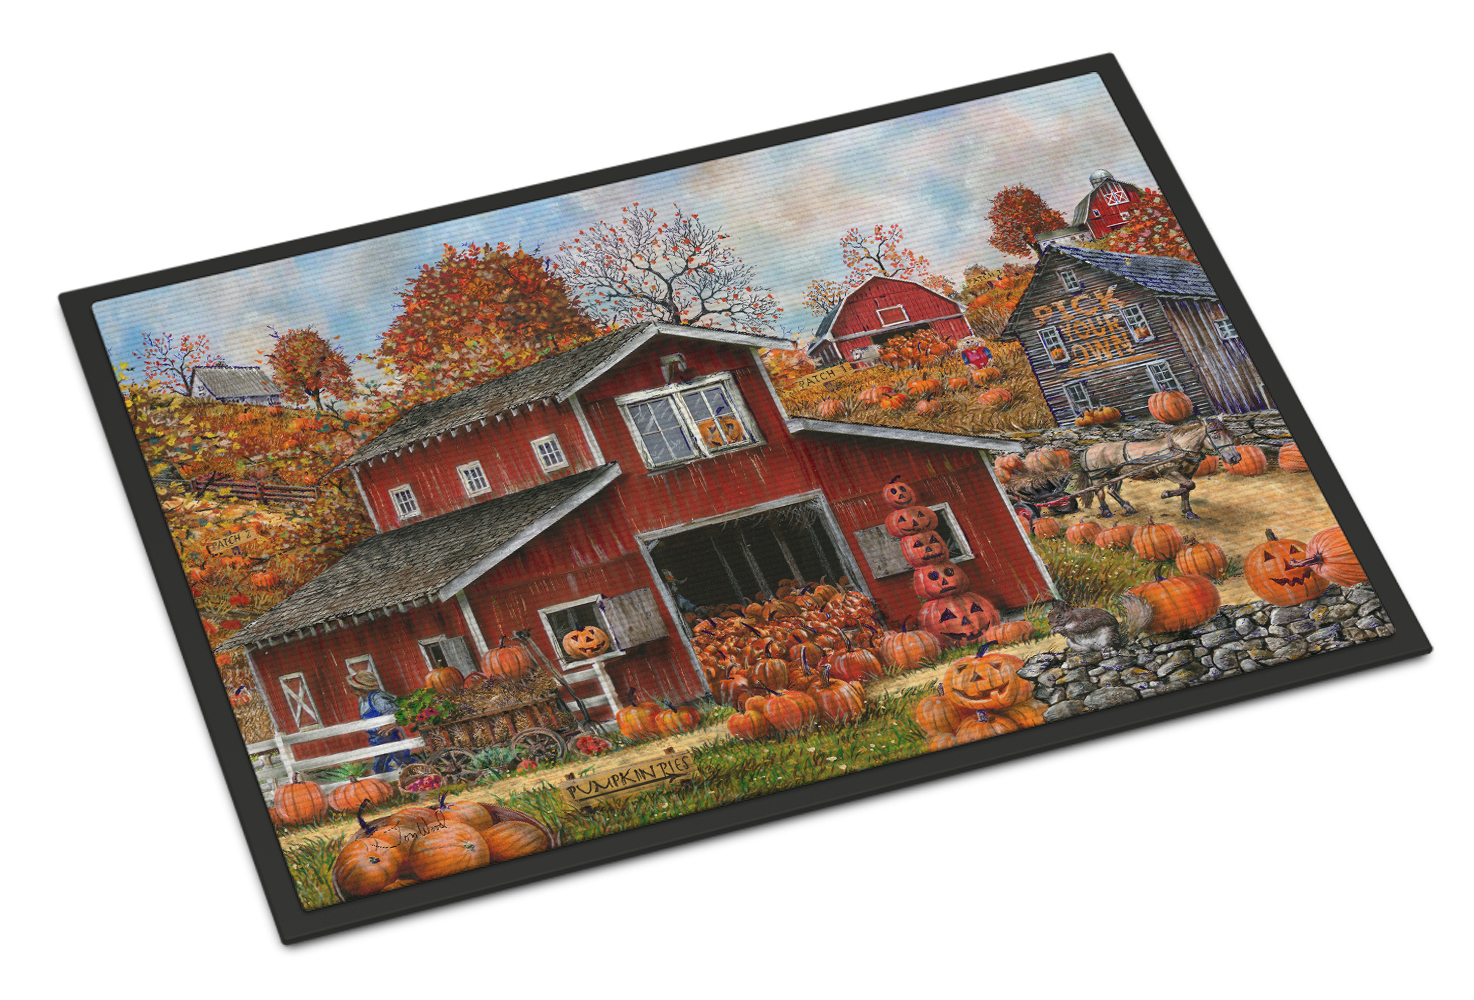 Pick your Own Pumpkins Fall Doormat by Caroline's Treasures